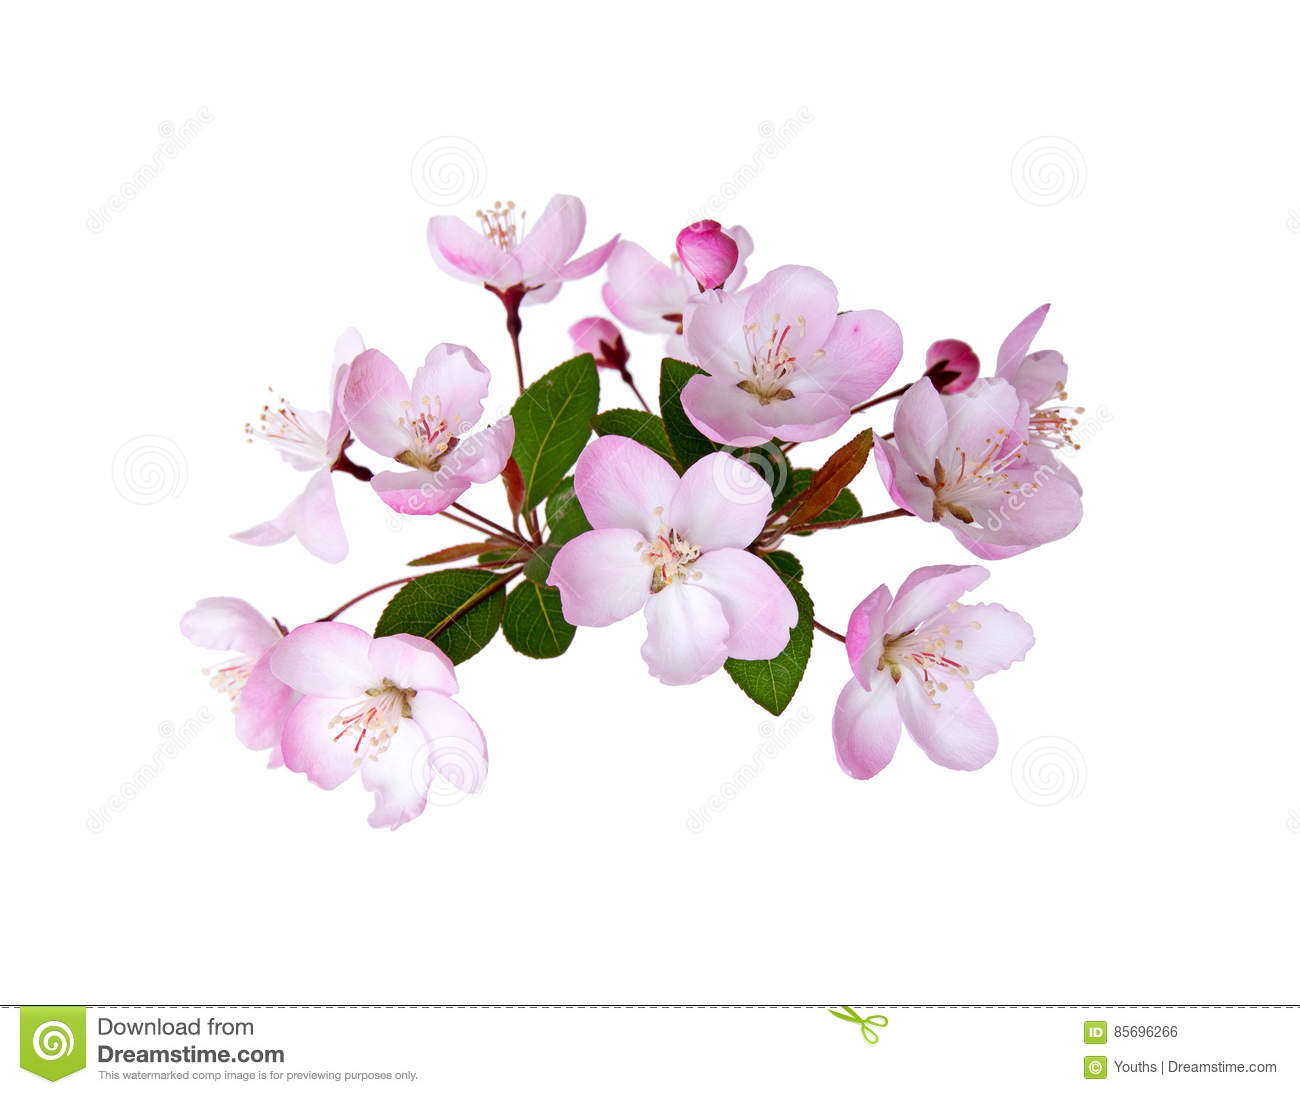 Blooming peach blossom in spring isolated on white